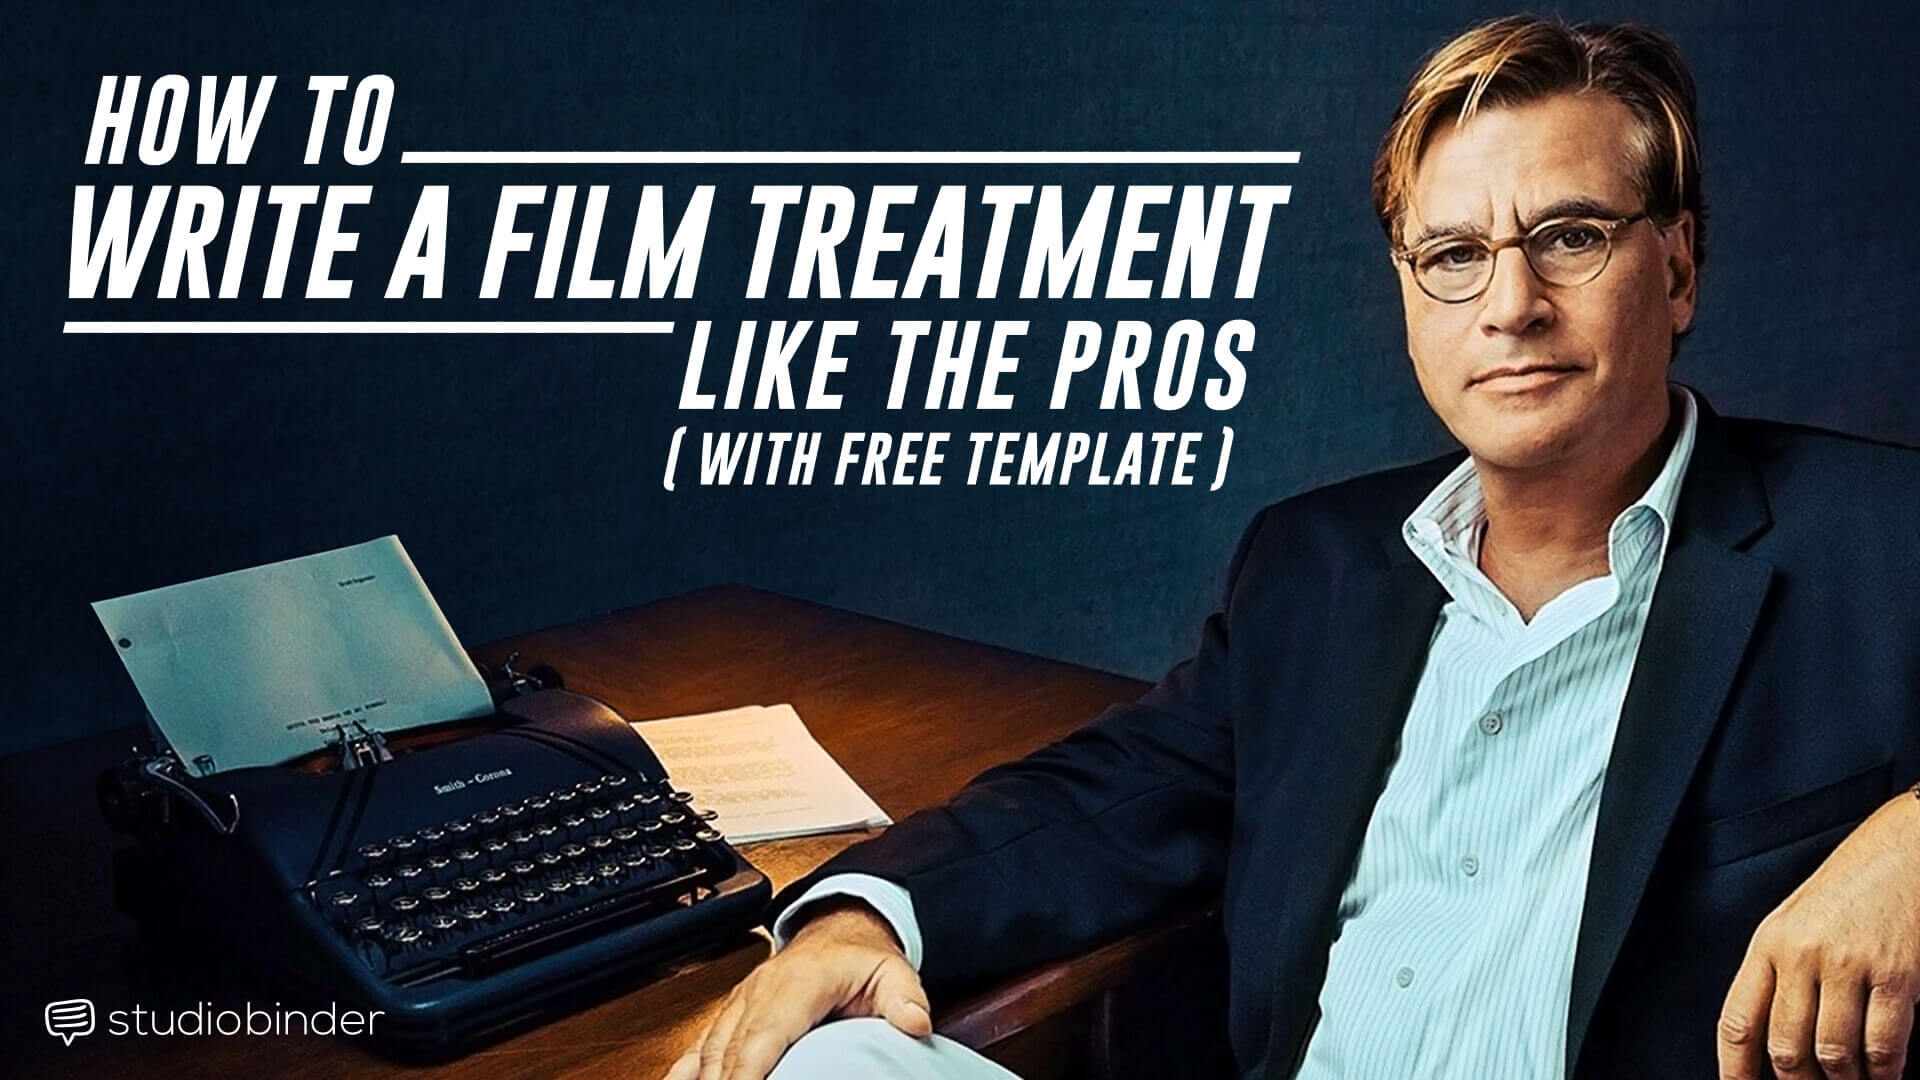 Free Film Treatment Template - How to Write a Film Treatemnt Like a Pro - StudioBinder